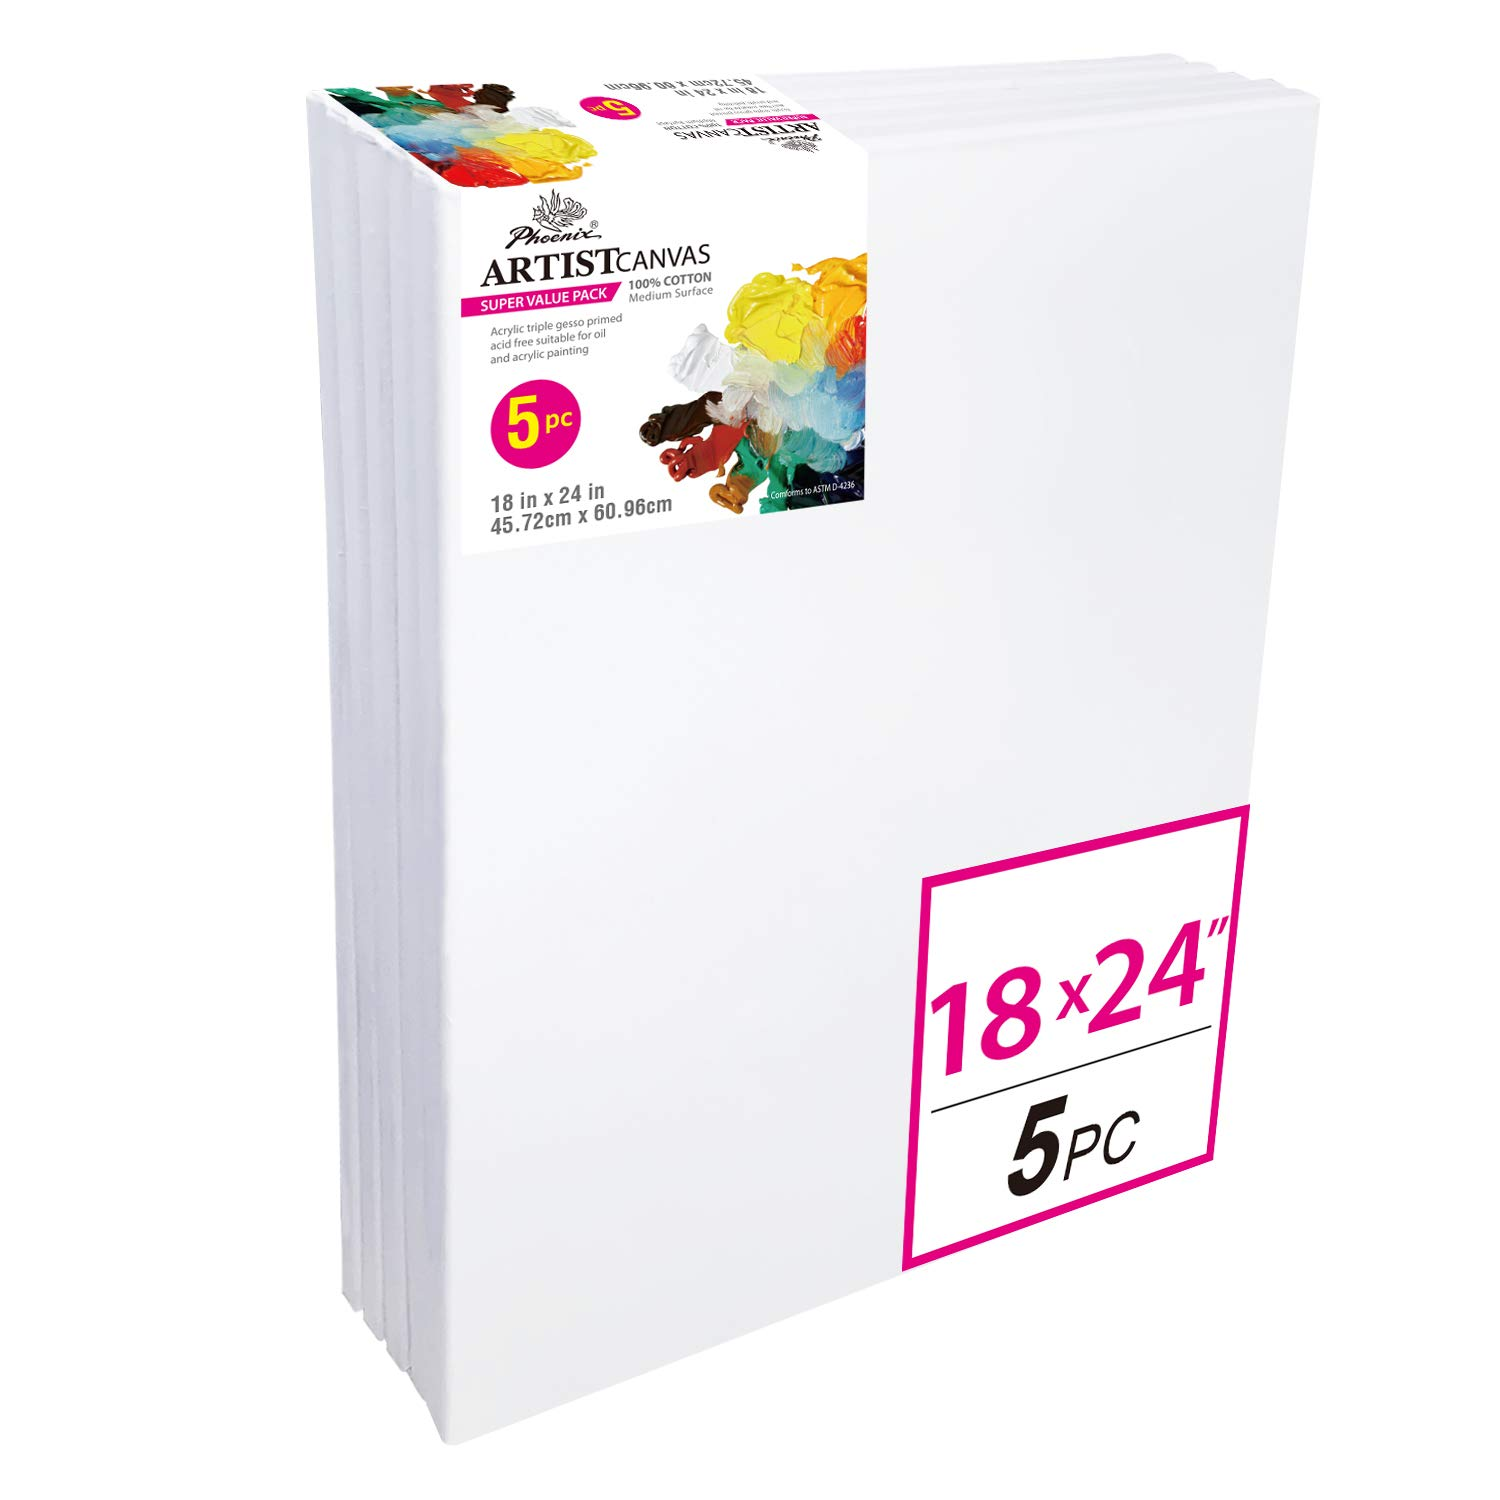 PHOENIX Pre Stretched Canvas for Painting - 18x24 Inch / 5 Pack - 5/8 Inch Profile of Super Value Pack for Oil & Acrylic Paint by PHOENIX